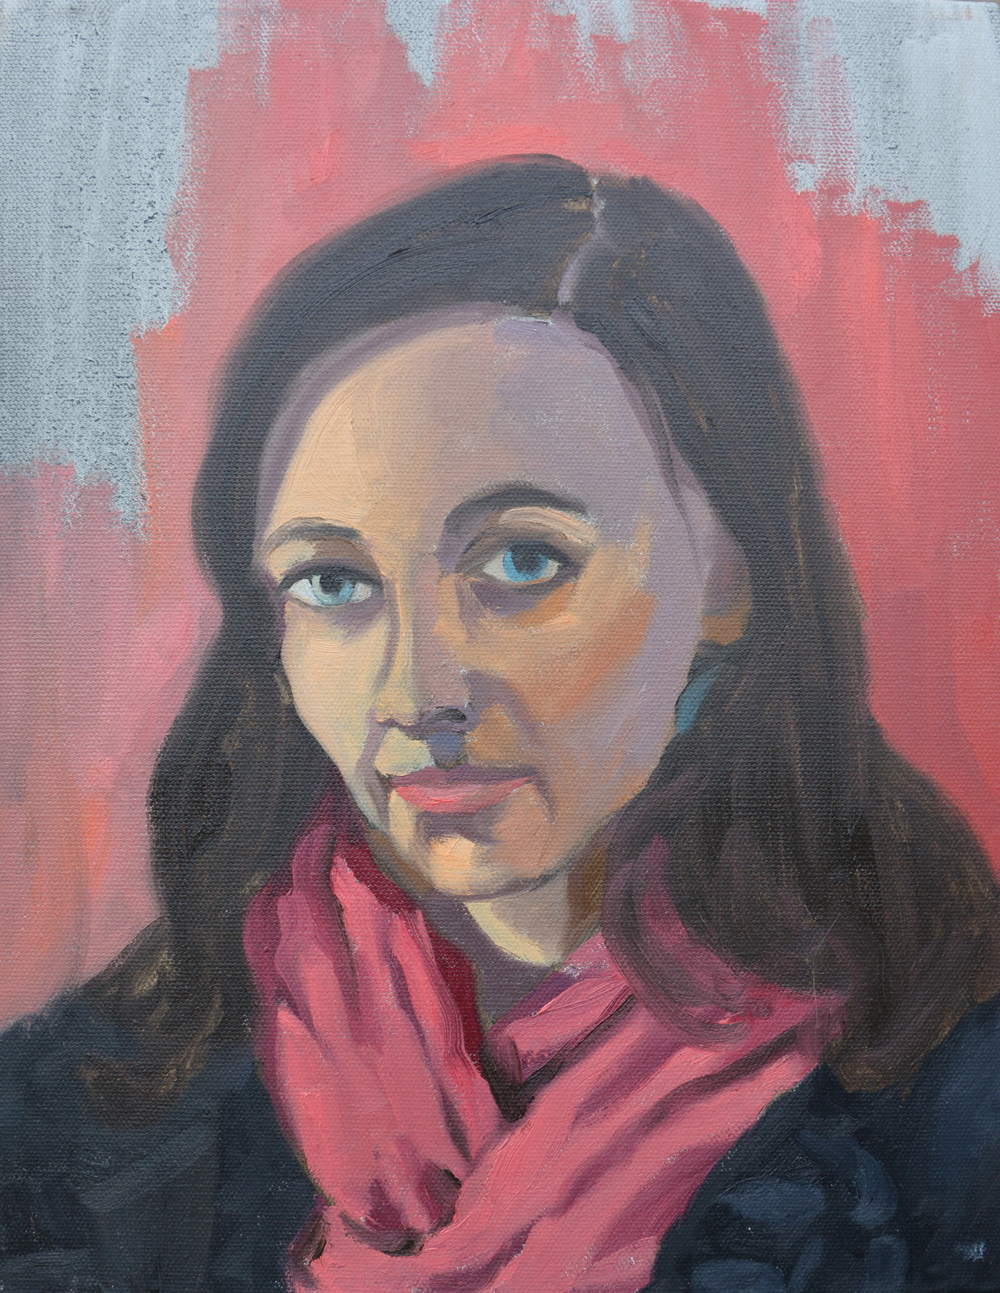 """Caylan, 11x14"""", oil on canvas, 2011"""